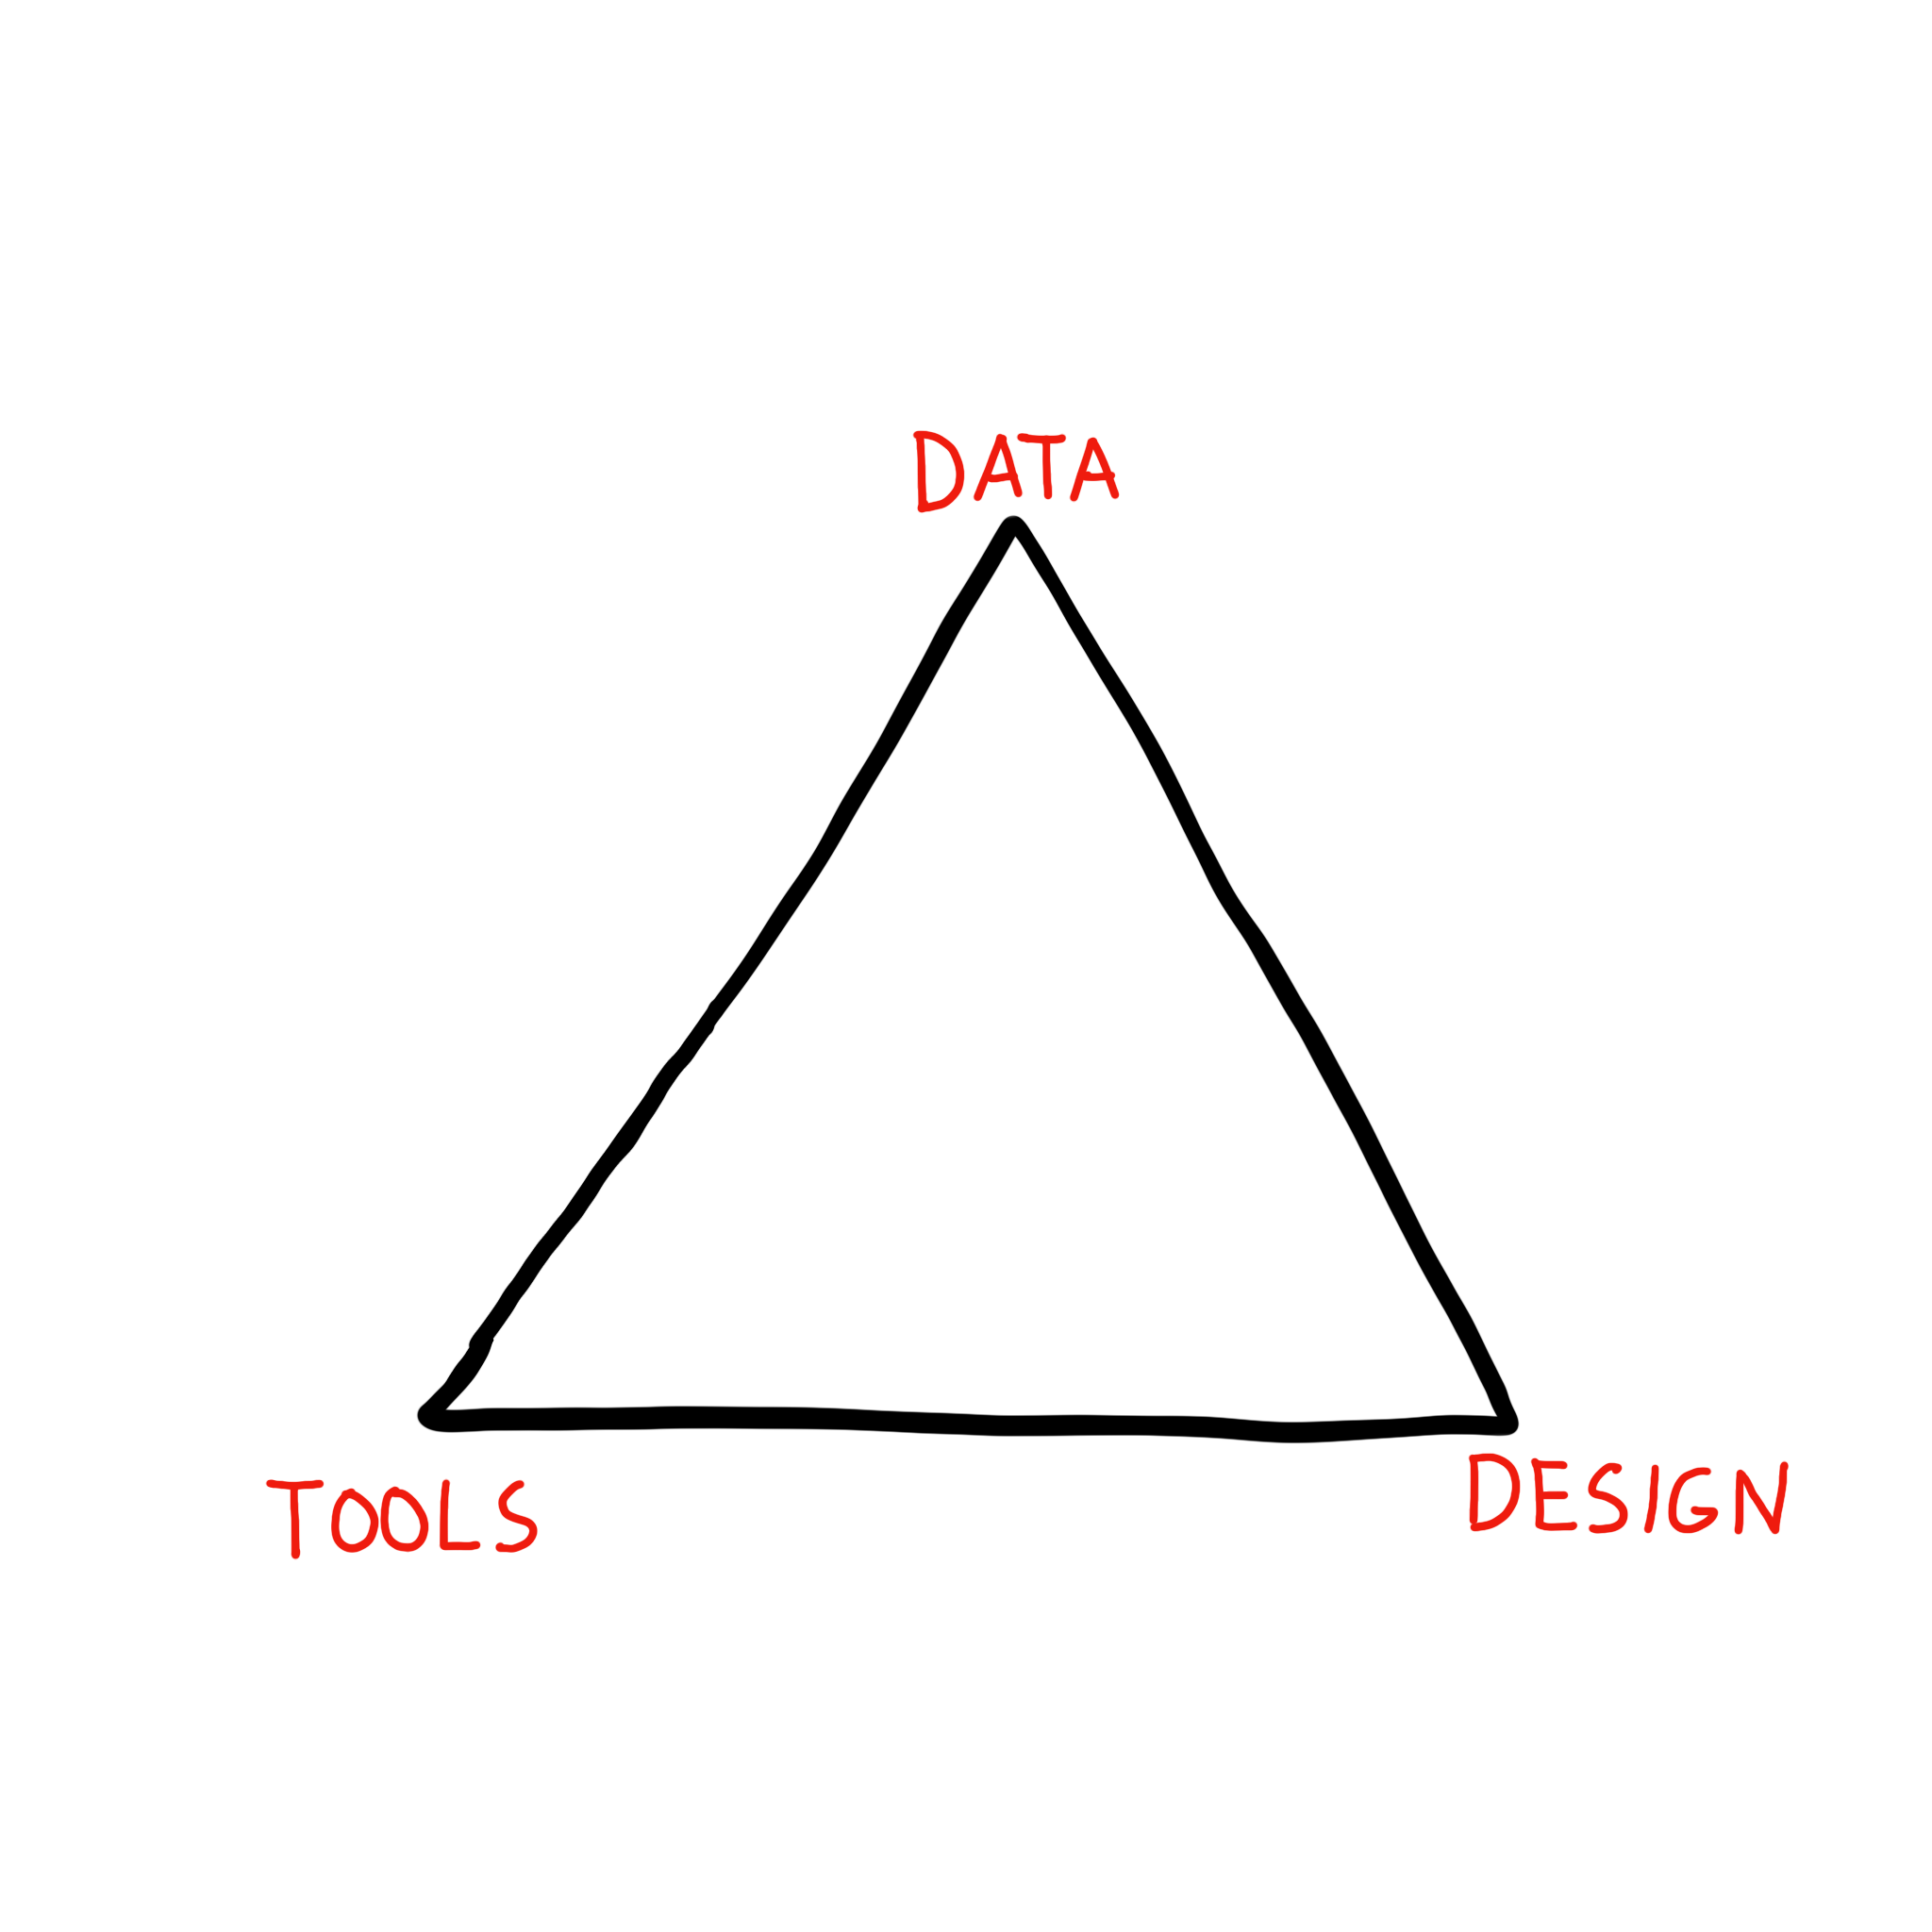 """Triangle with labels """"data"""", """"design"""", and """"tools"""" at the points"""